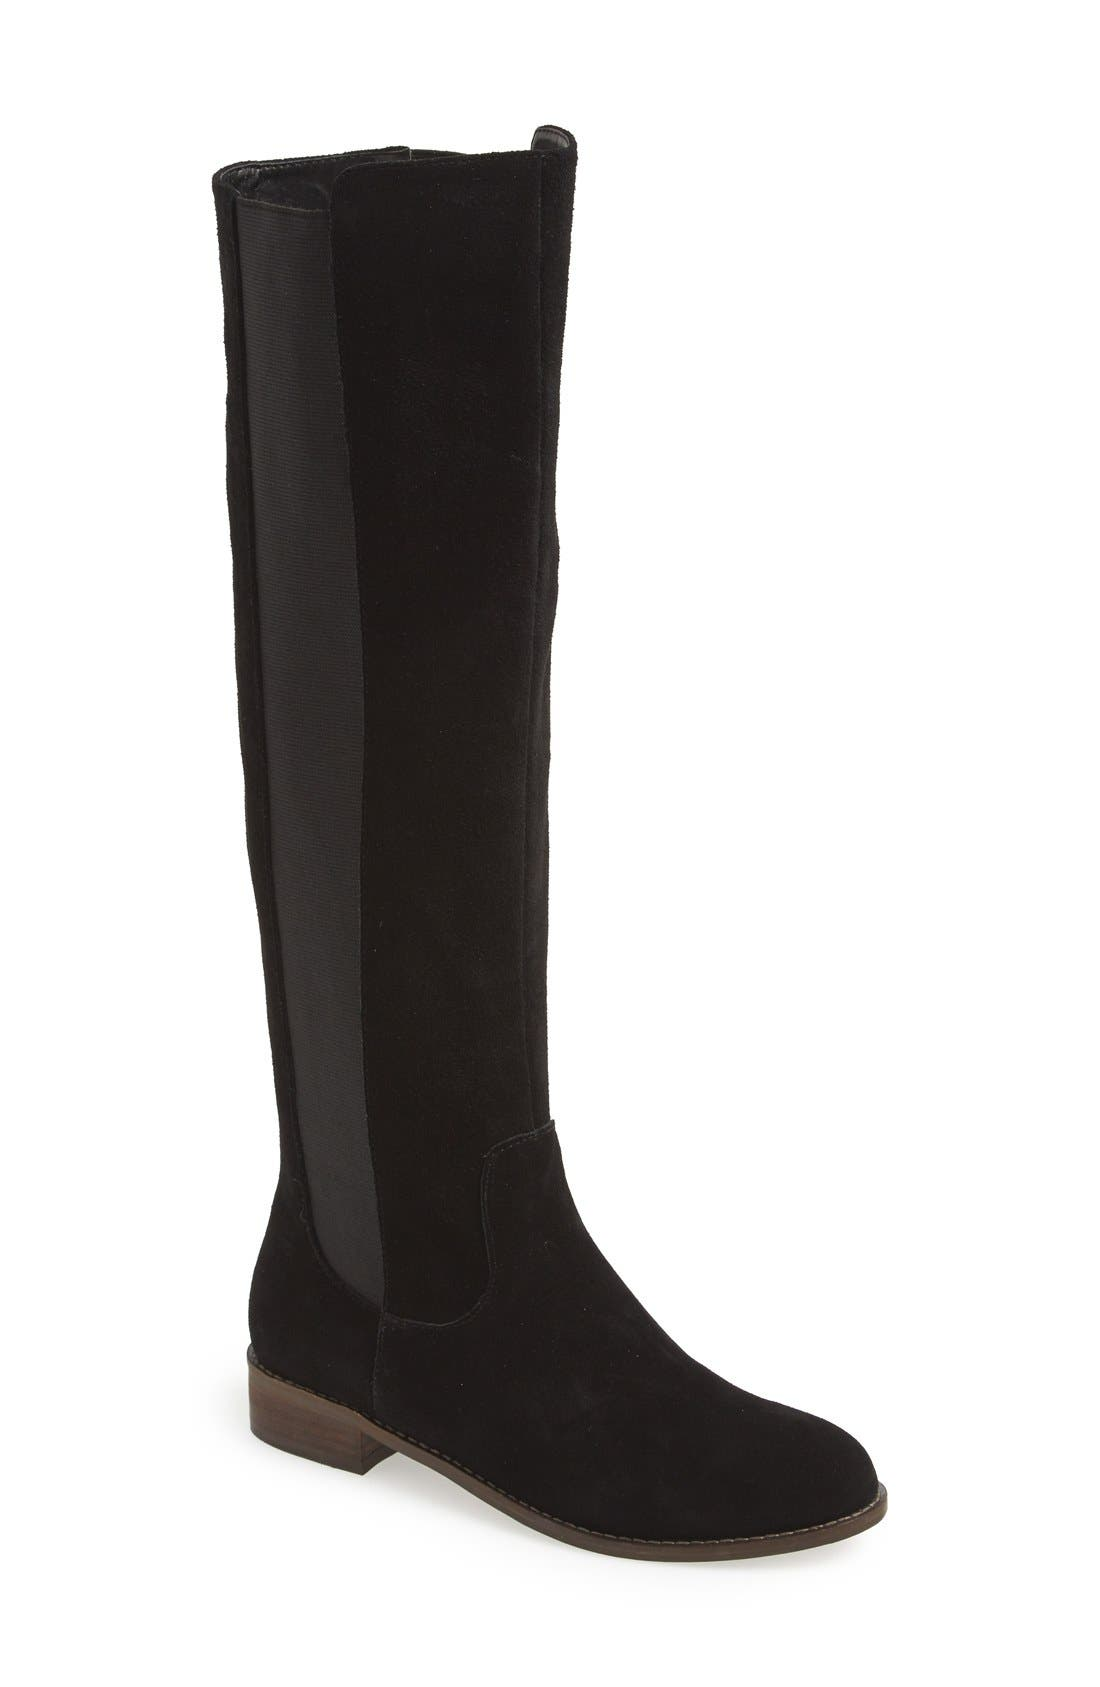 'Timber' Suede Knee High Boot,                         Main,                         color, 001